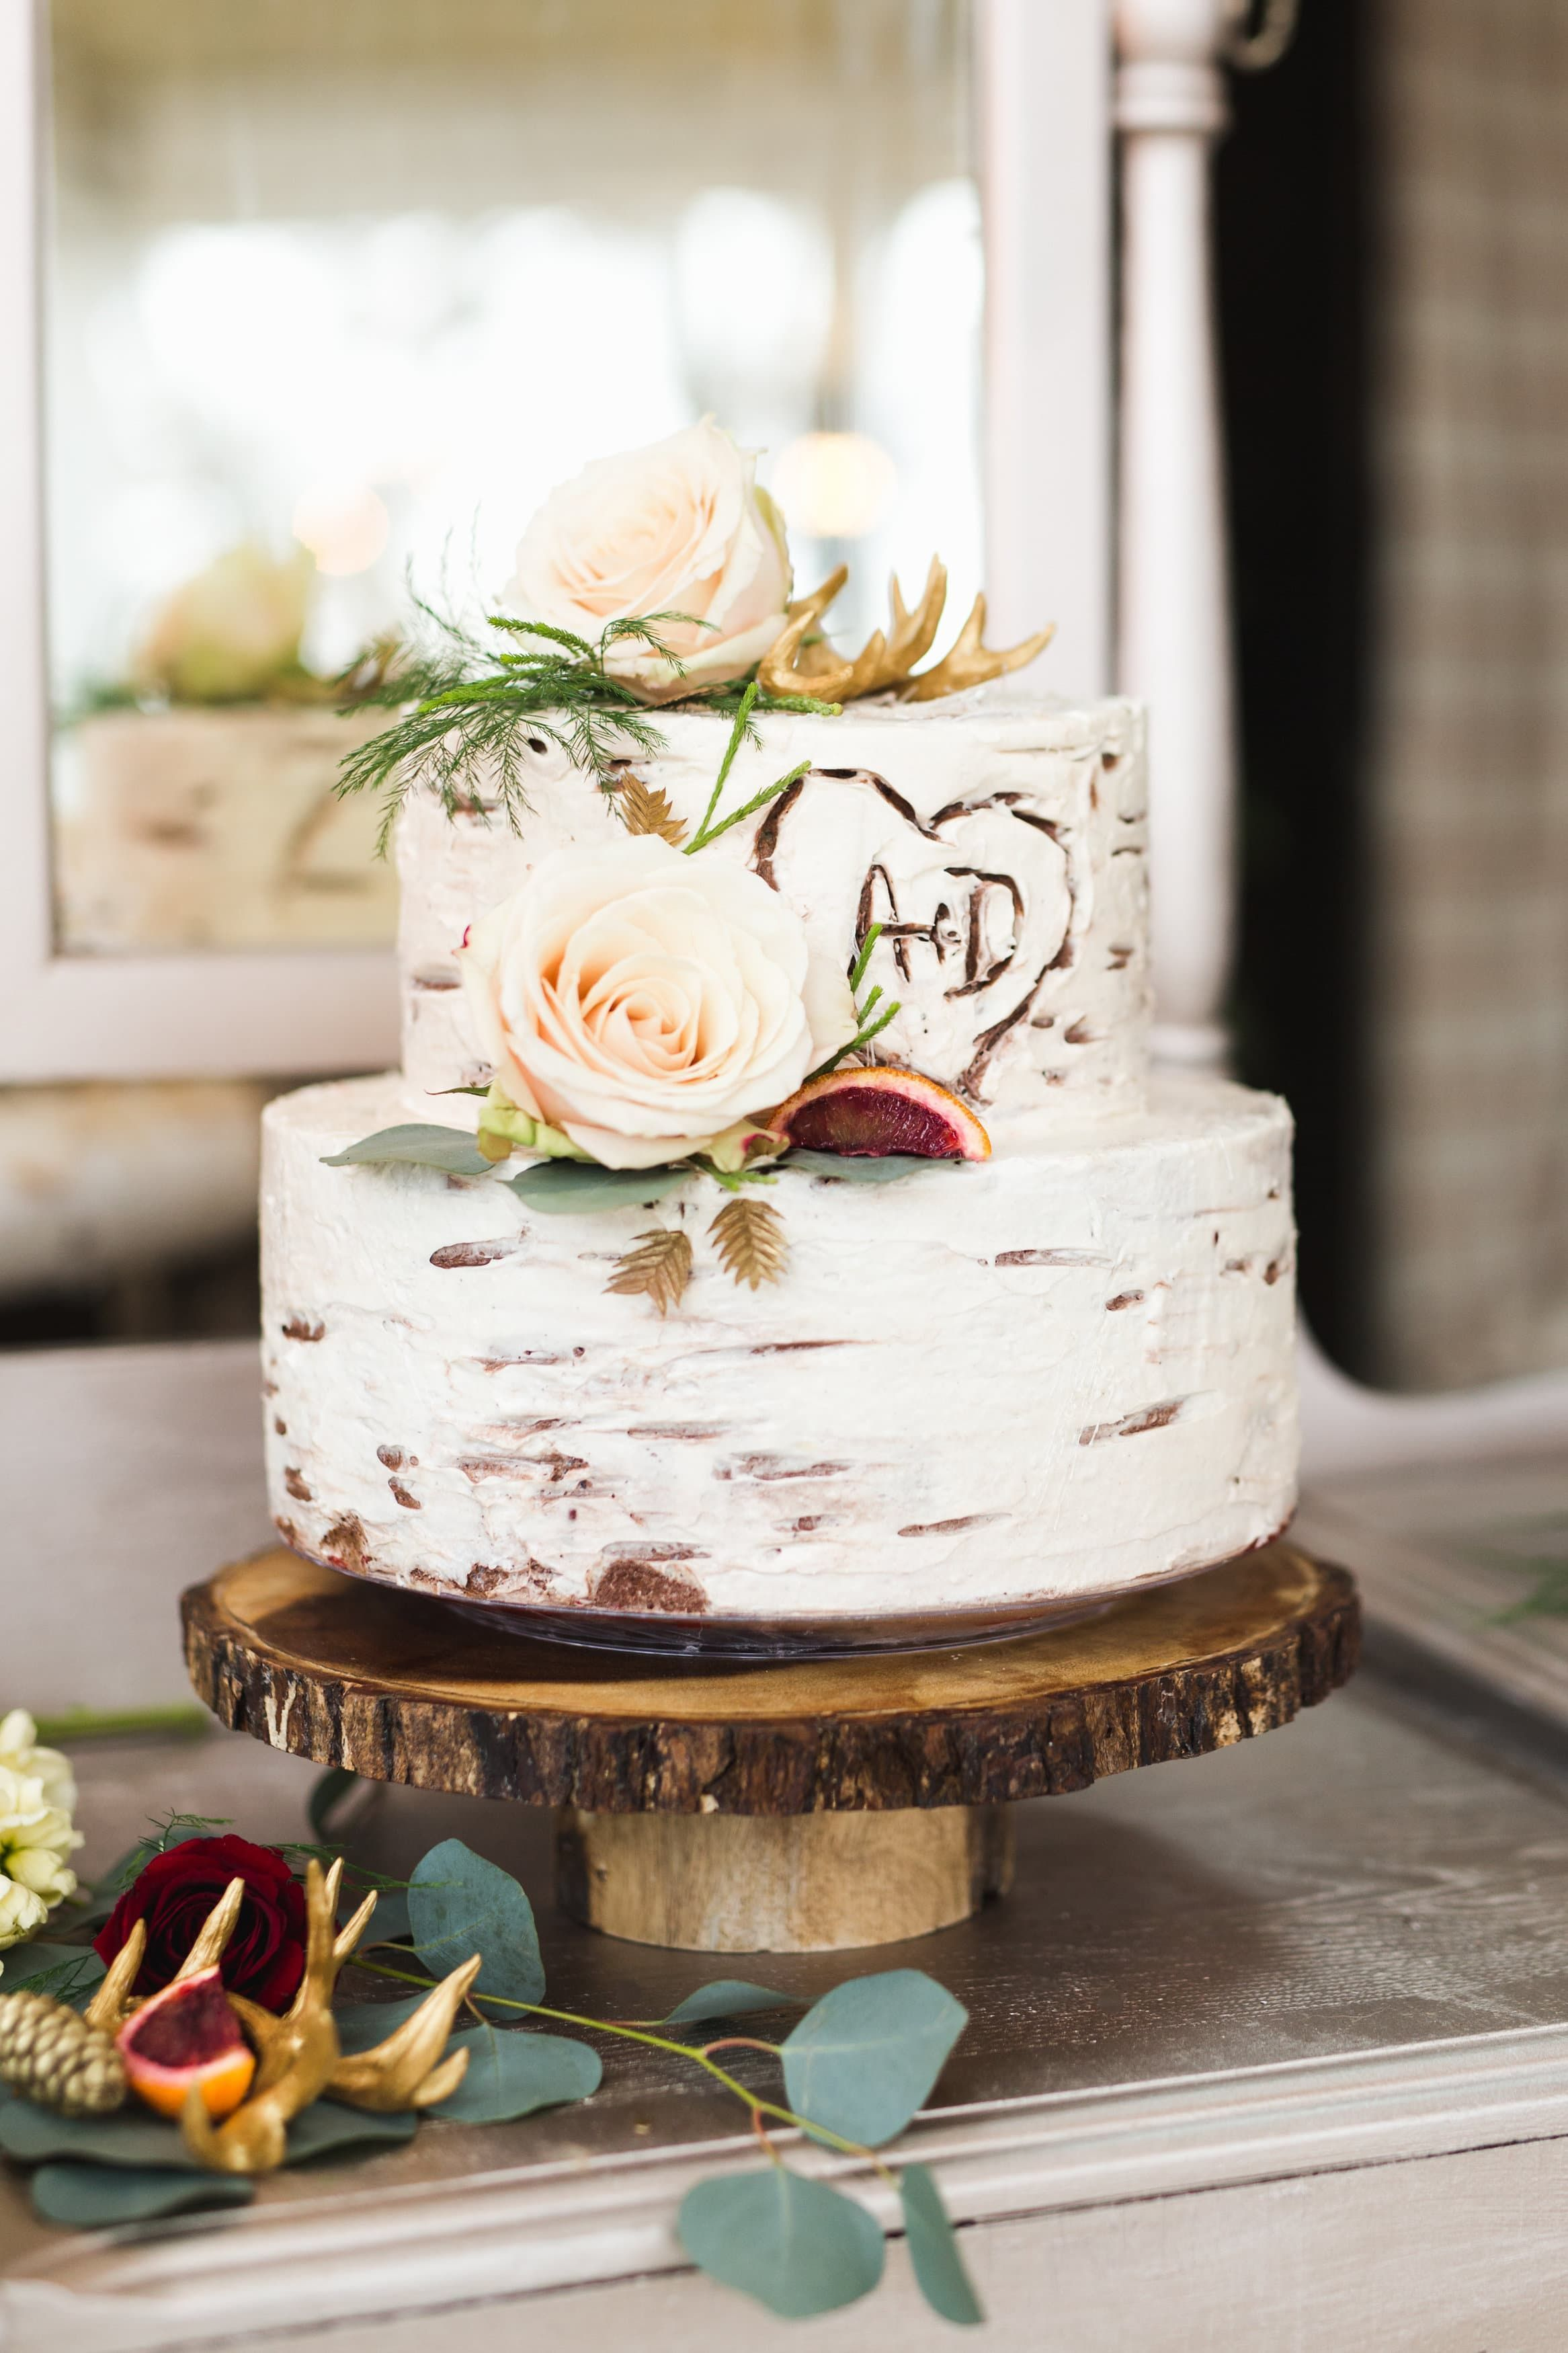 how to ice rustic wedding cake rustic inspiration wedding cake ideas wedding 15756